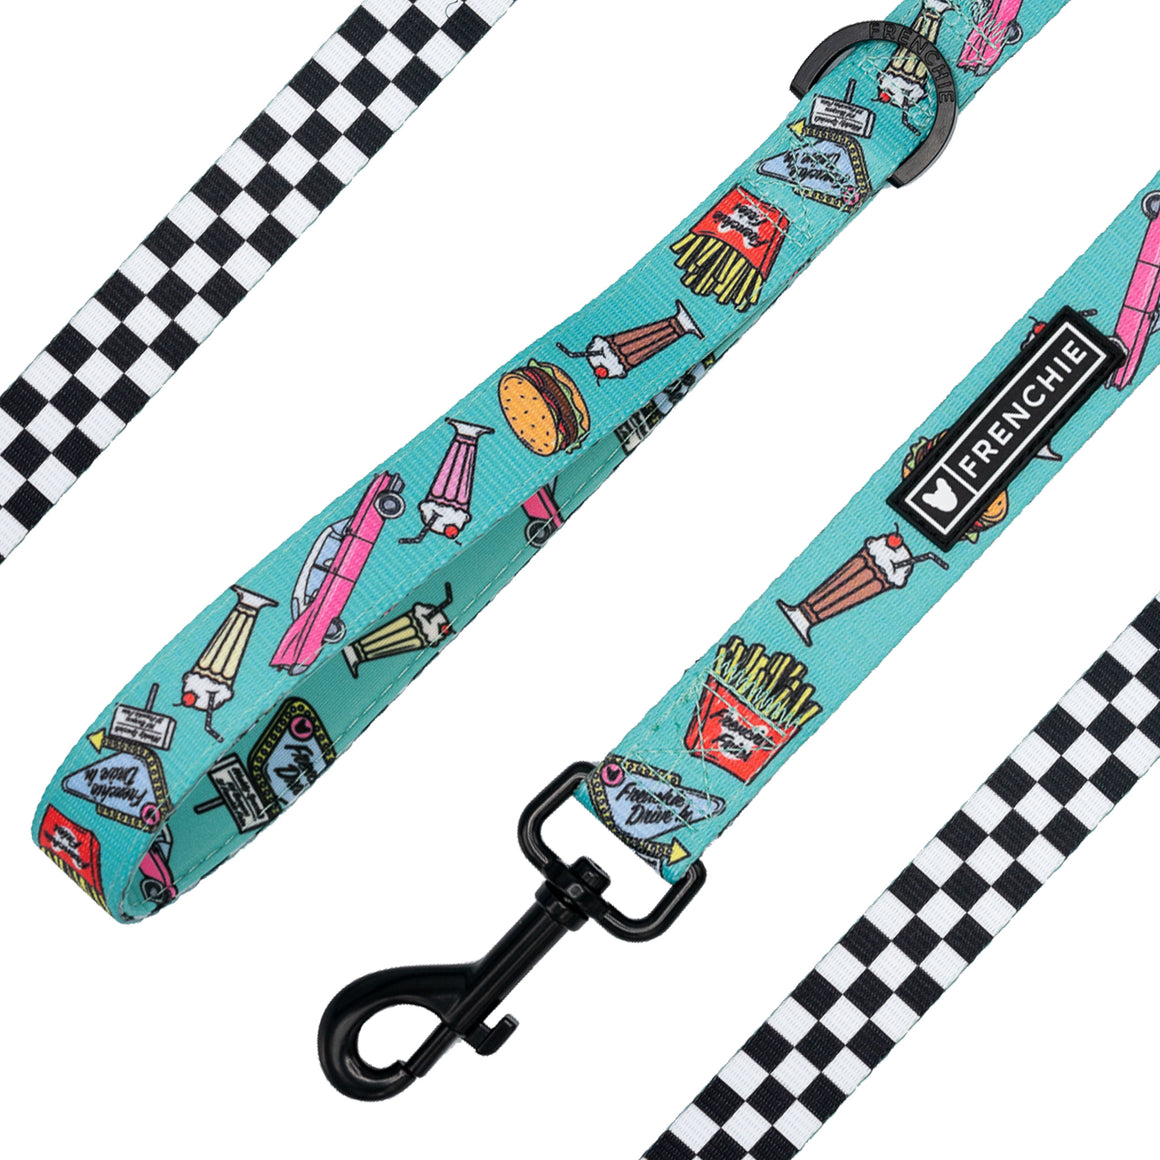 Frenchie Comfort Leash - Frenchie Drive-In - Frenchie Bulldog - Shop Harnesses for French Bulldogs - Shop French Bulldog Harness - Harnesses for Pugs